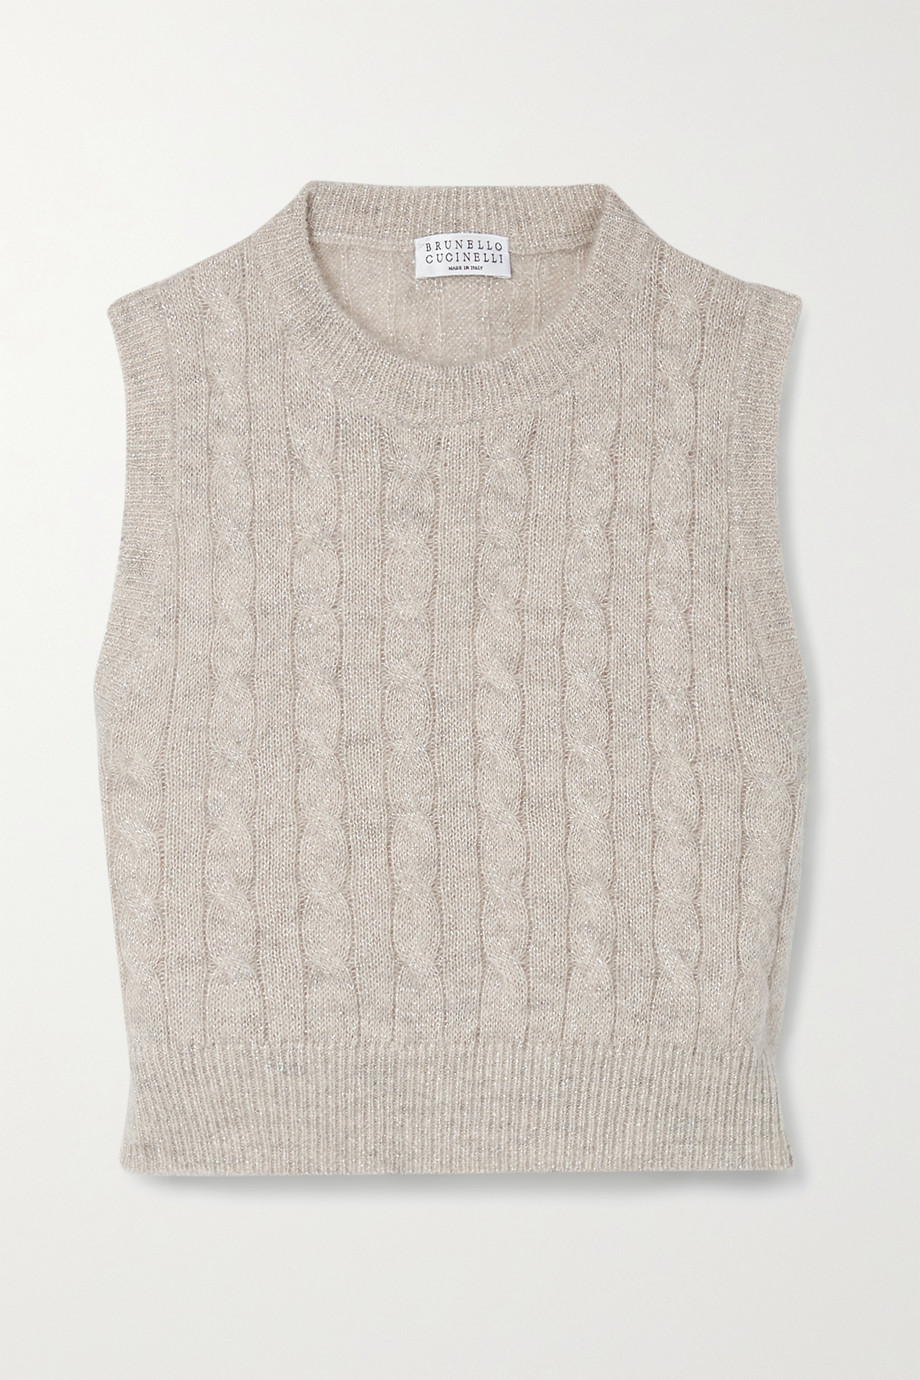 Brunello Cucinelli Cropped metallic cable-knit top